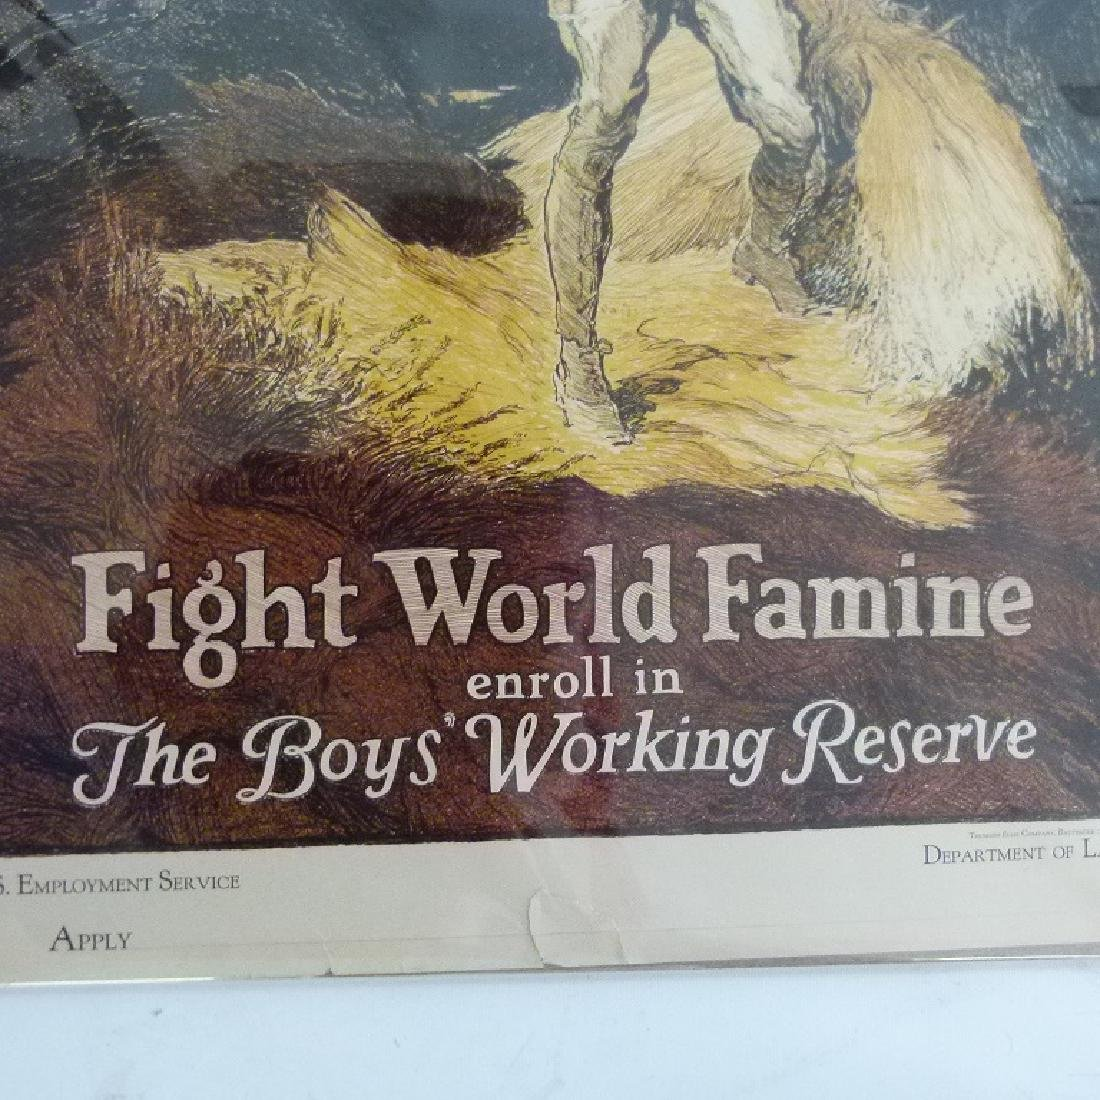 """LOT (2) LITHOS-POSTERS """"FIGHT WORLD FAMINE"""" - 6"""